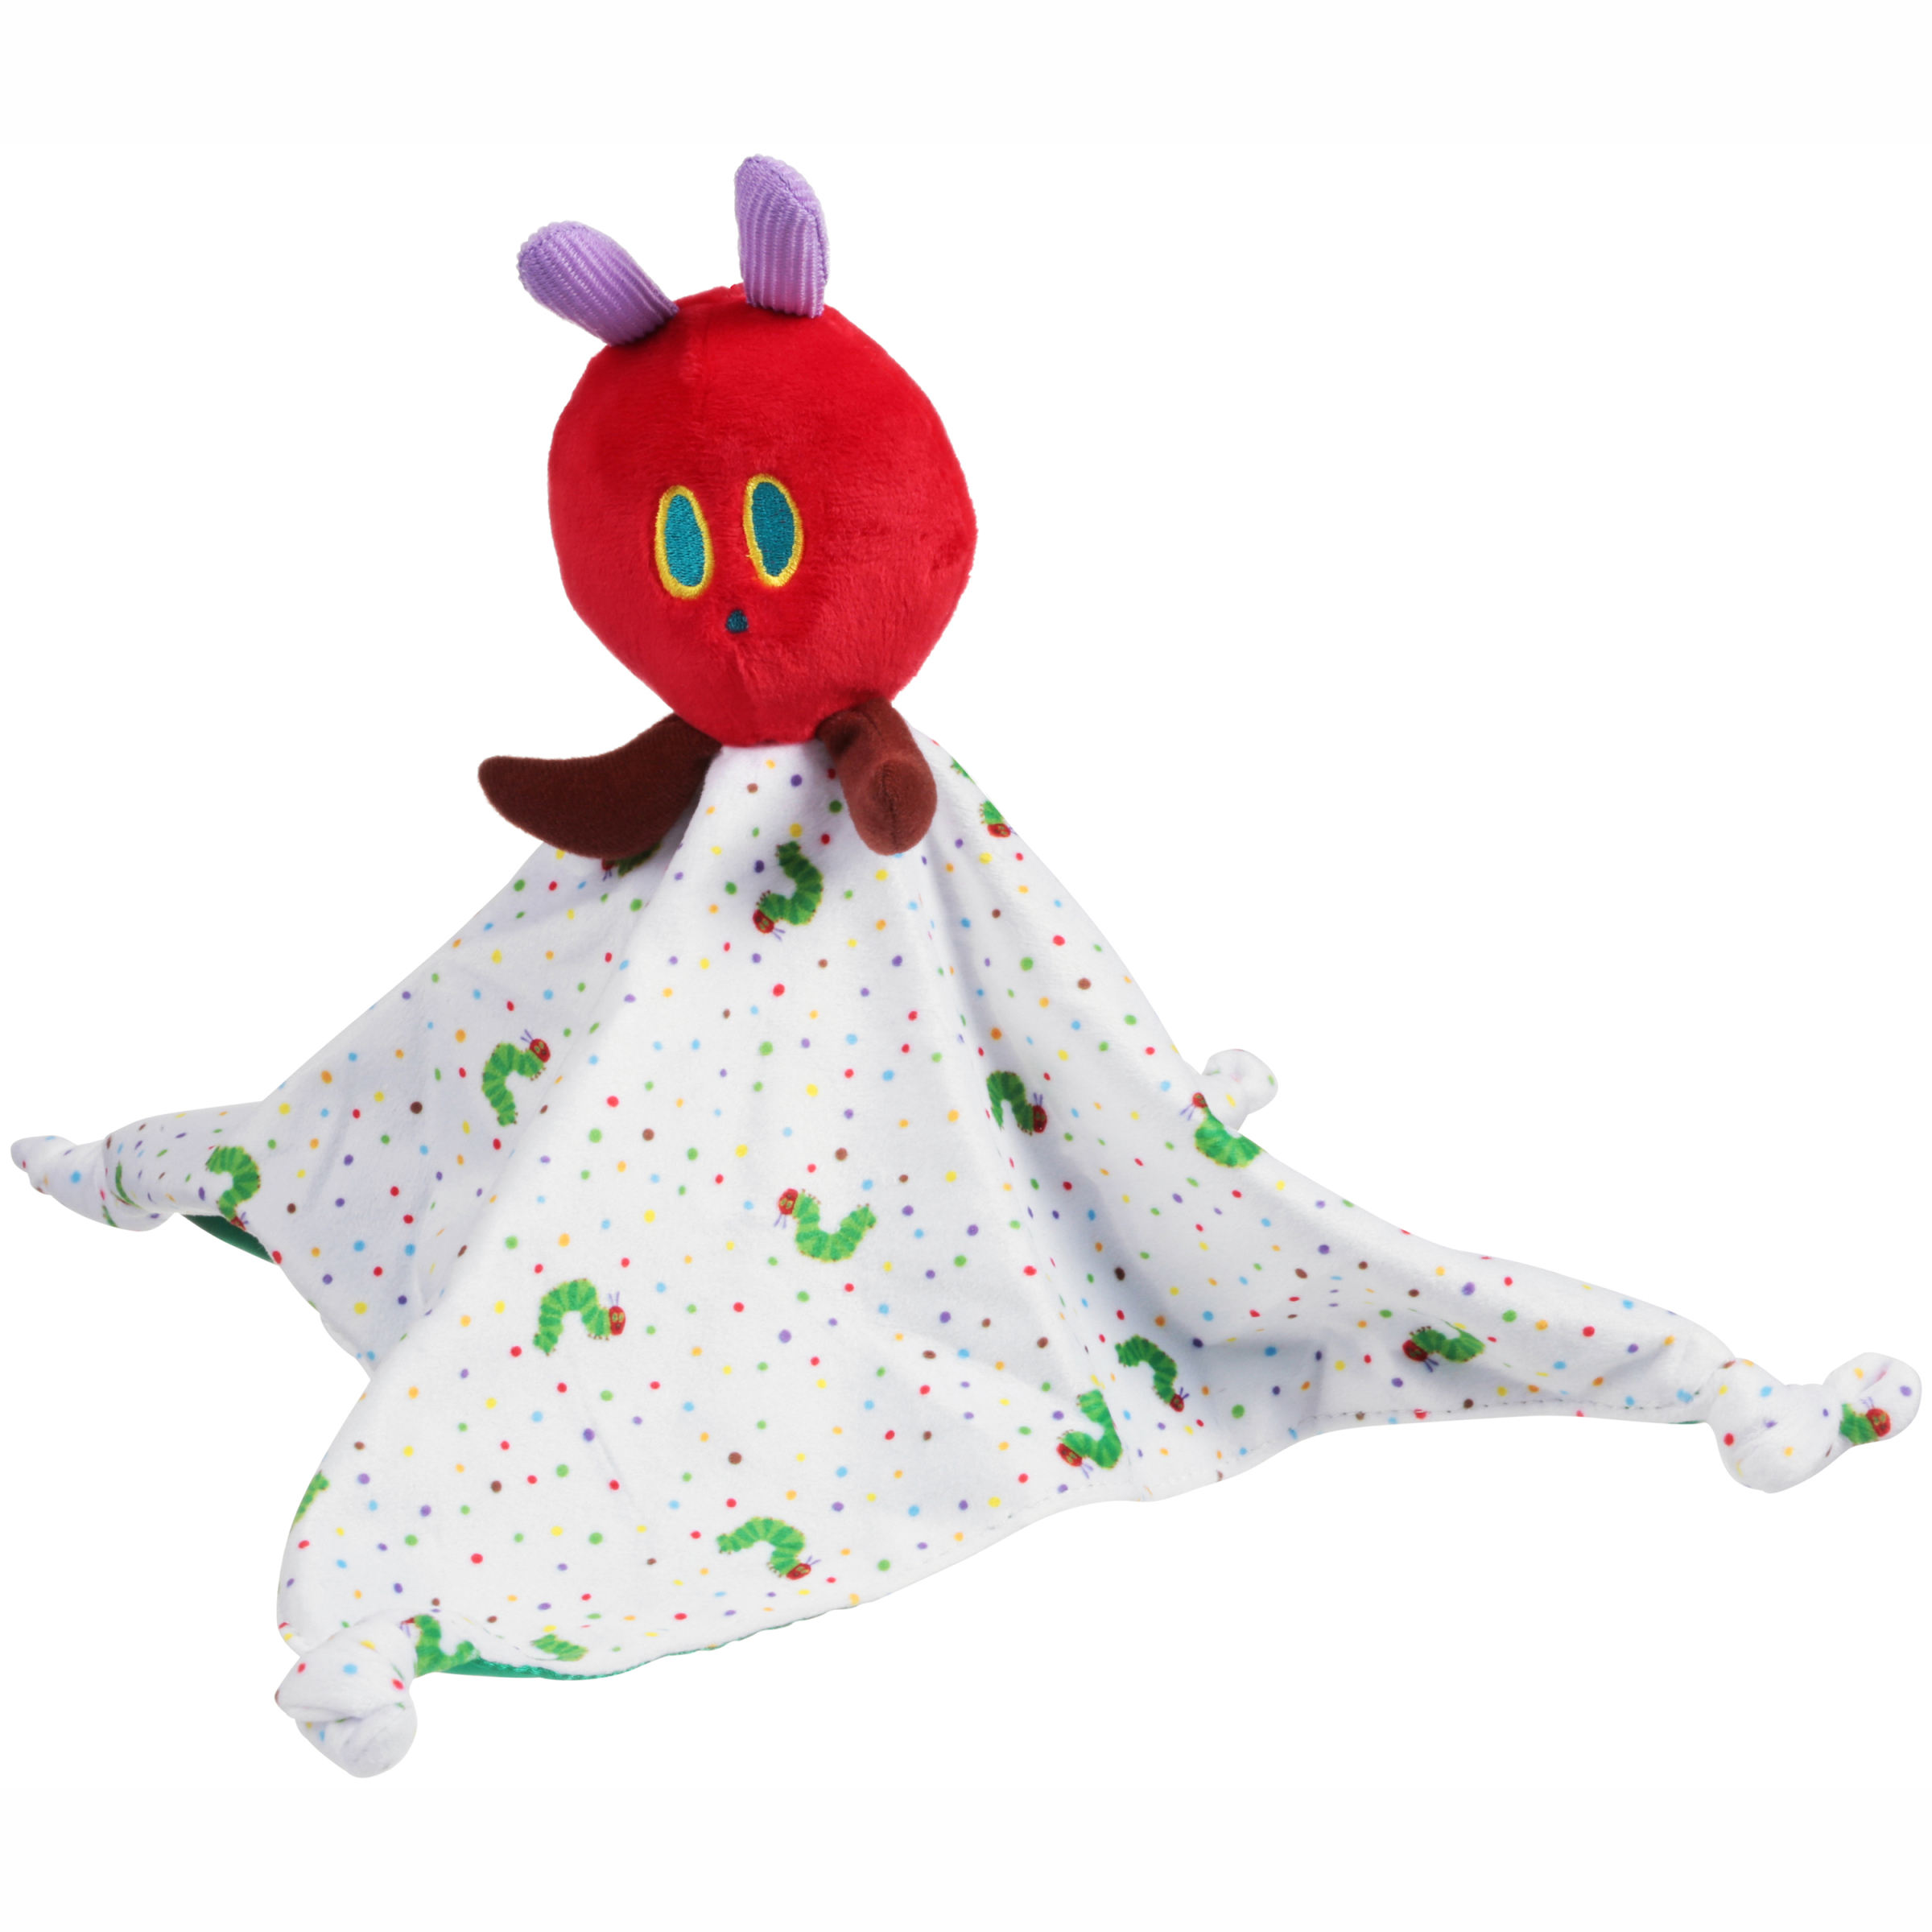 Kids Preferred™ The World of Eric Carle™The Very Hungry Caterpillar™ Snuggle Blanky